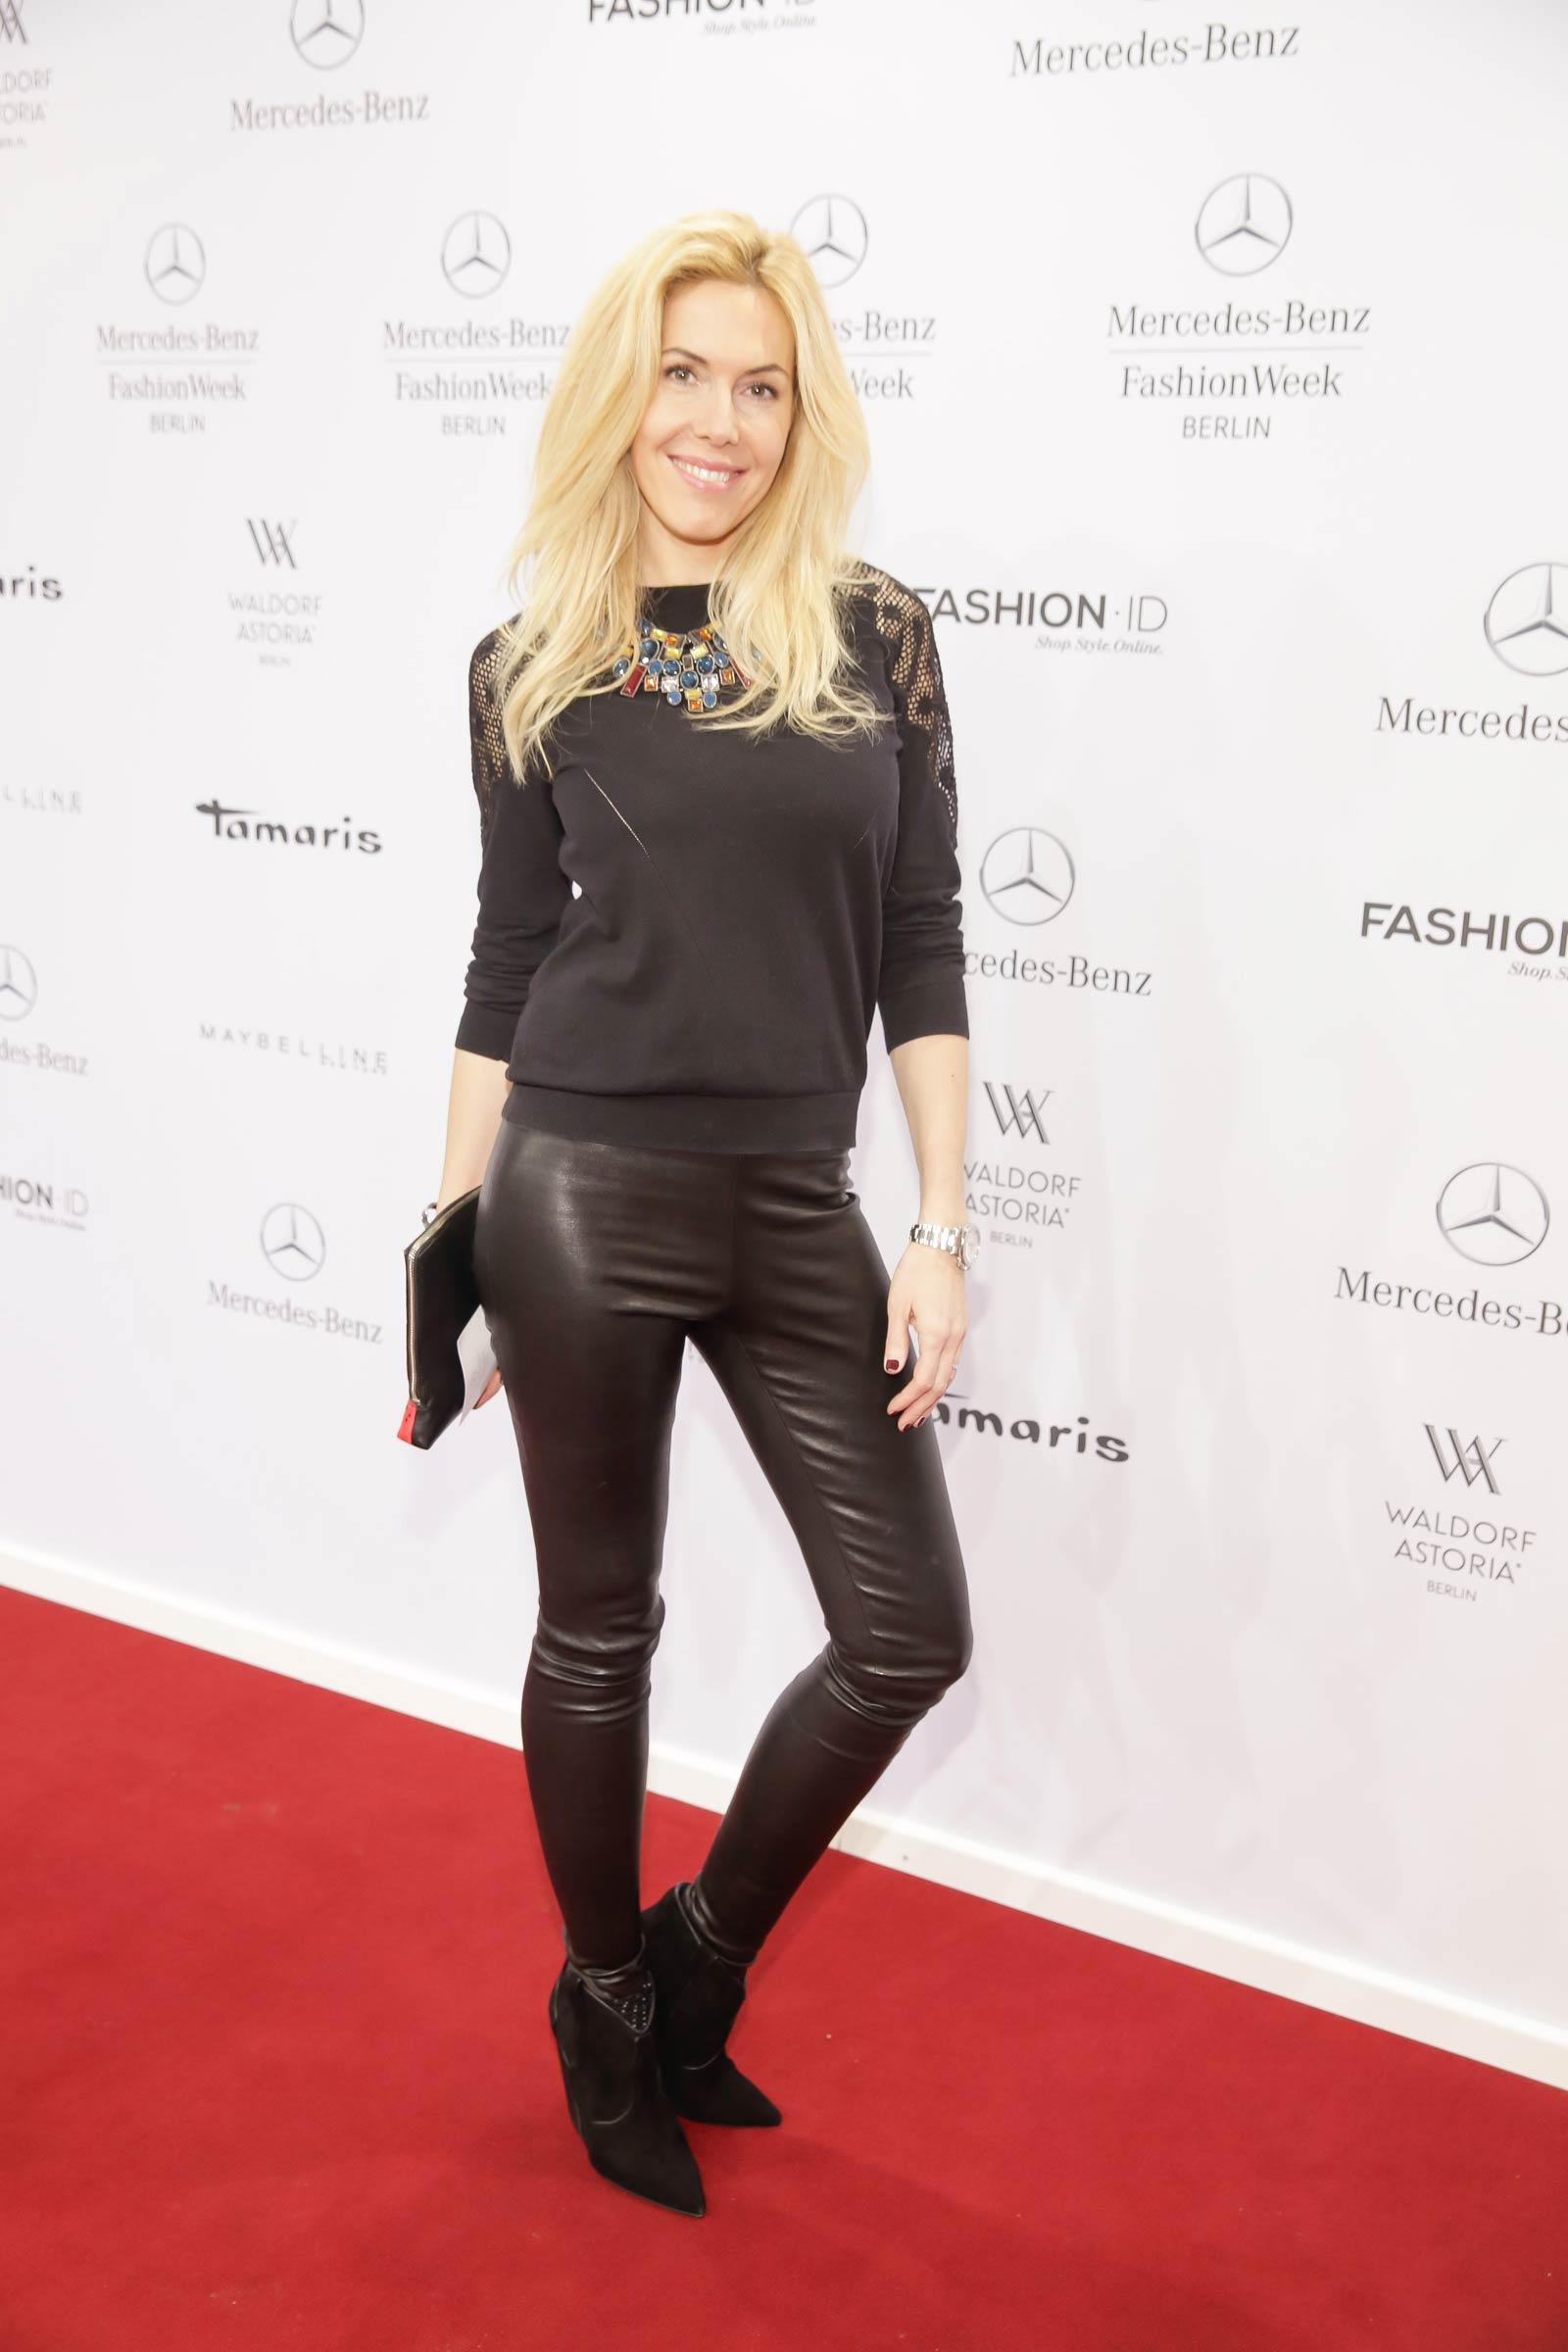 Alexandra Klim & Alexandra Polzin attend Merceses Benz Fashion Week